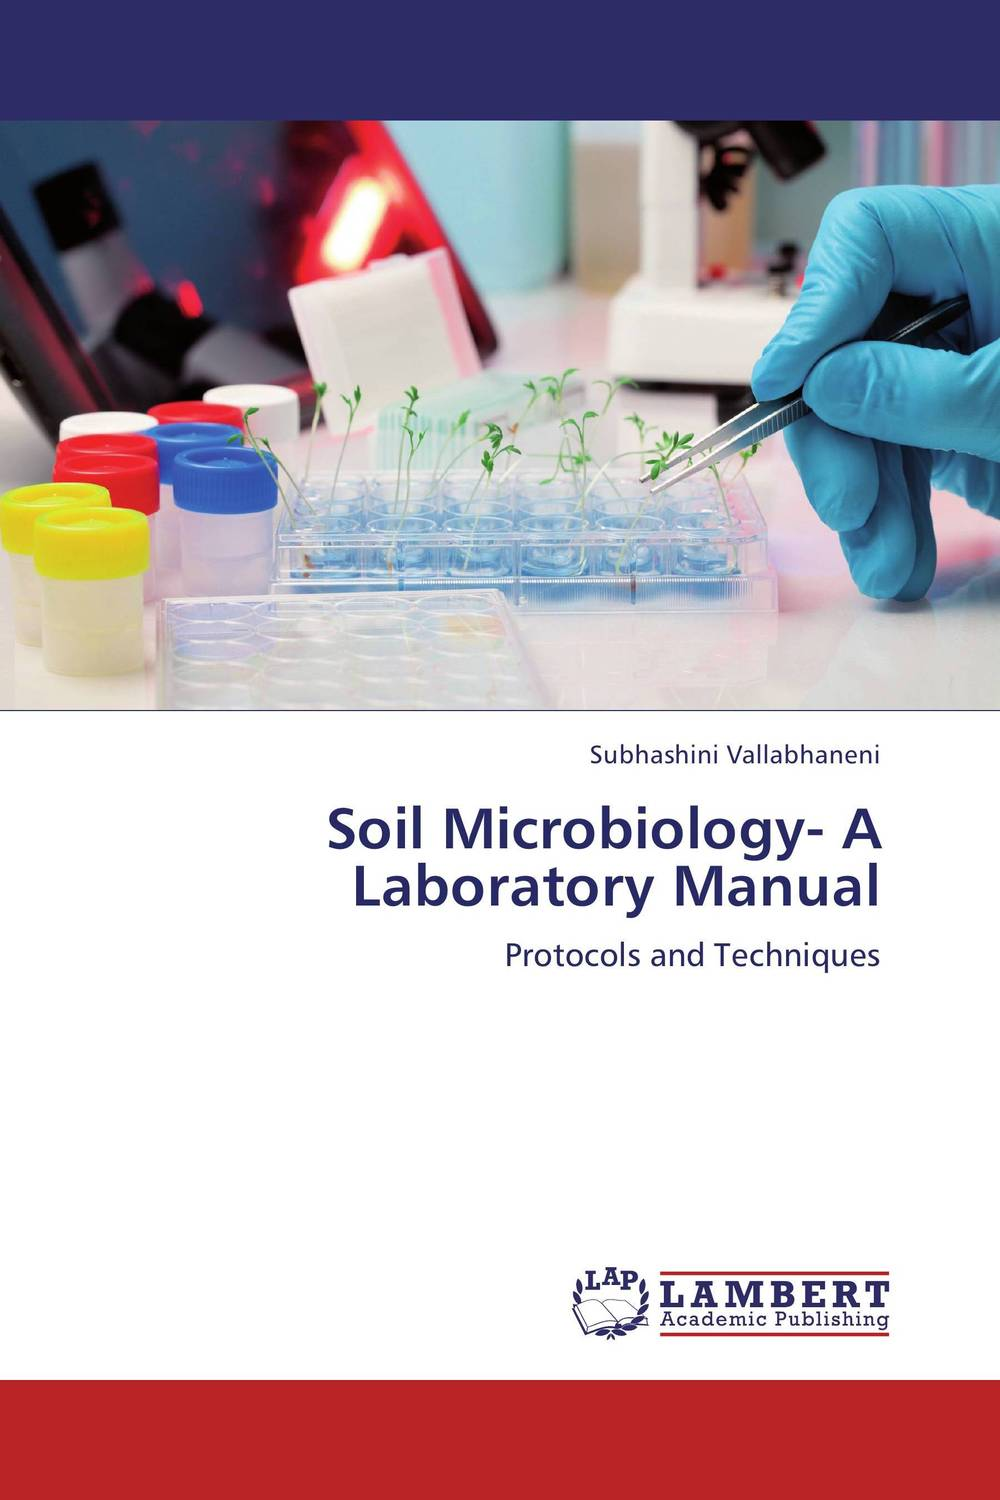 Soil Microbiology- A Laboratory Manual fundamentals of medical microbiology volume i